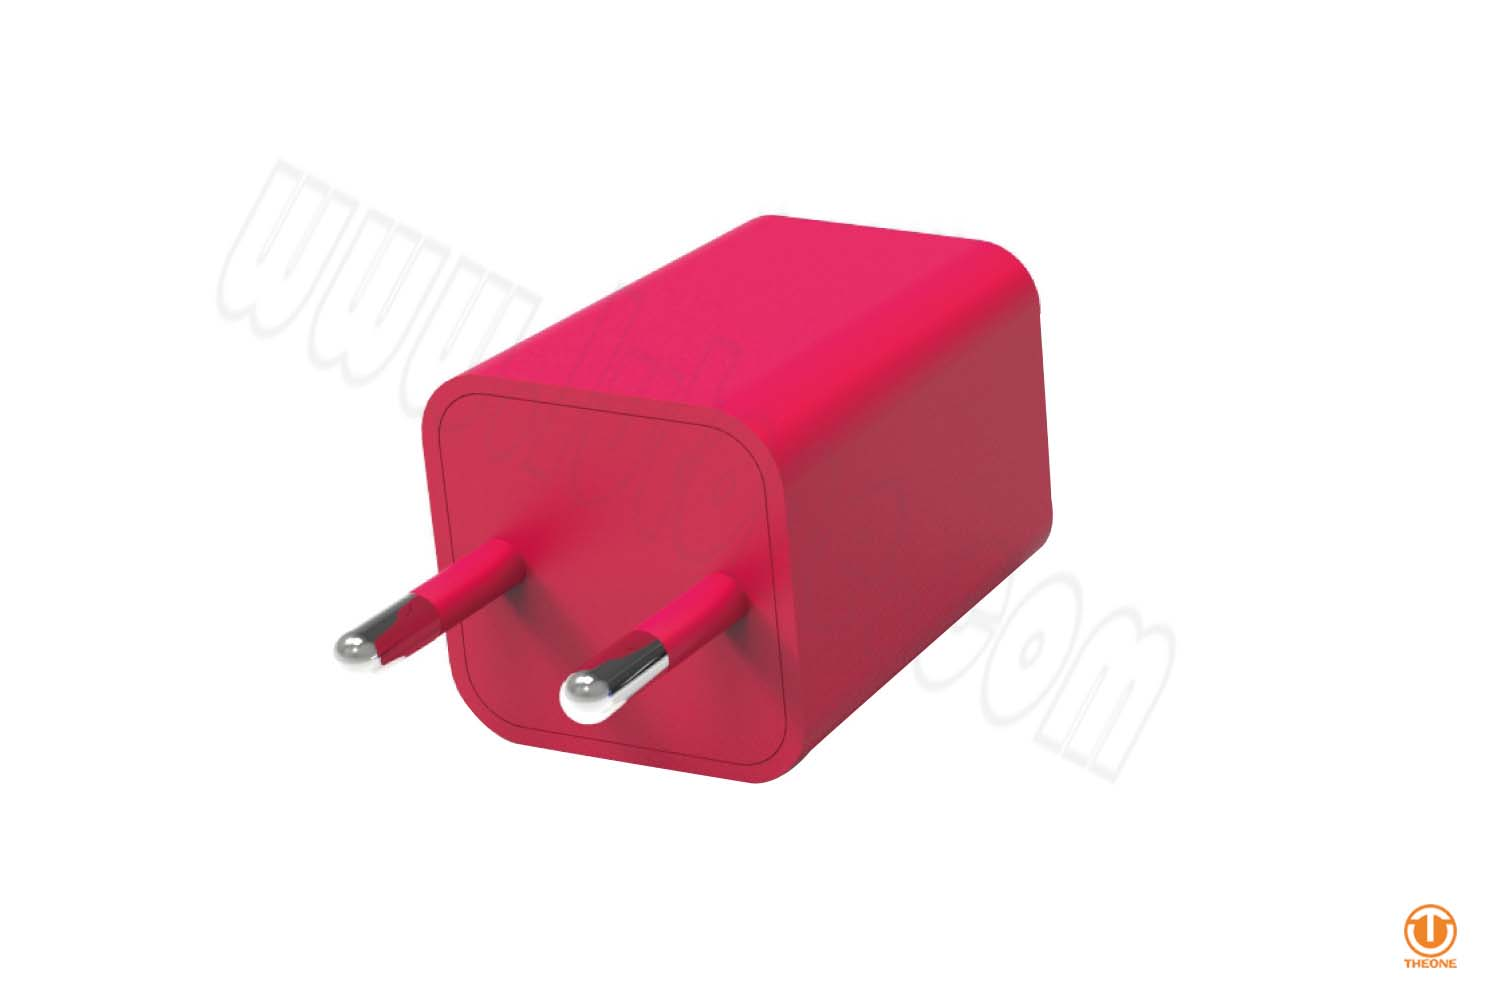 tc03a0-2 dual usb wall charger